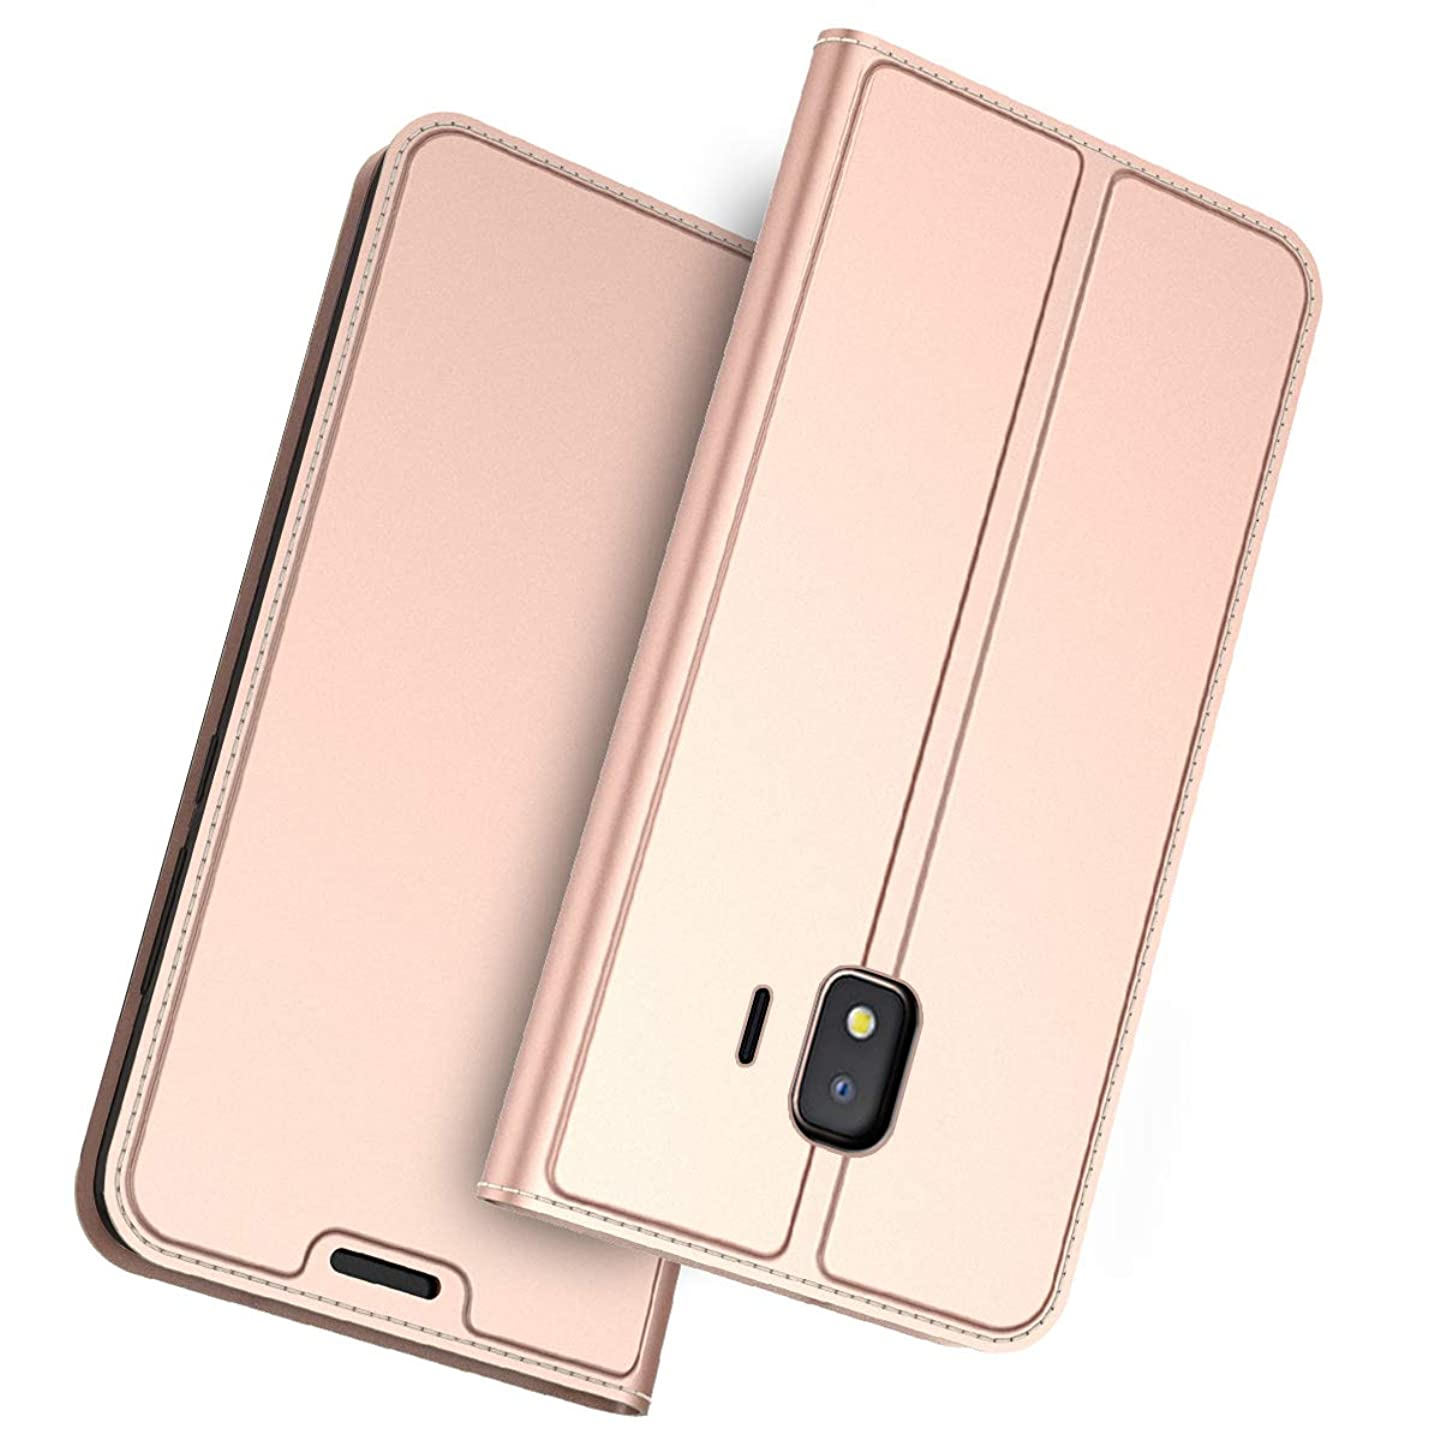 Happon for Samsung Galaxy J2 Core Genuine Leather Wallet Case Cover, Flip Stand, Card Slot, Stylish, Rose Gold